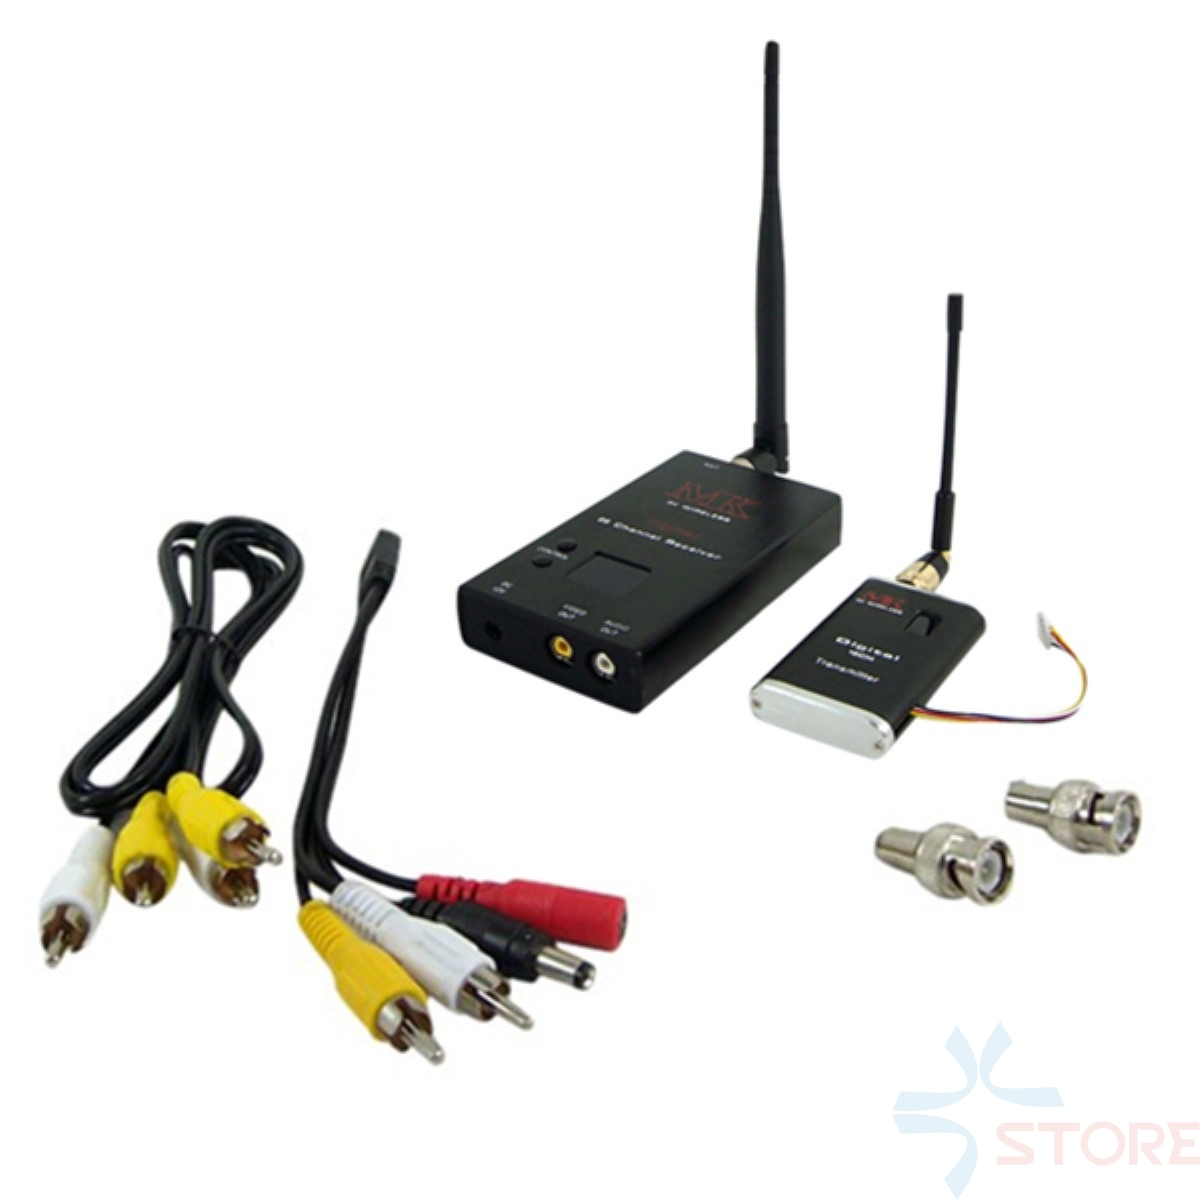 MK 1.2G Hz 15CH 2W 2000mW FPV 1-5km Distance Wireless Audio Video CCTV Transmitter Receiver For FPV PHOTOGRAPHY tp760 765 hz d7 0 1221a